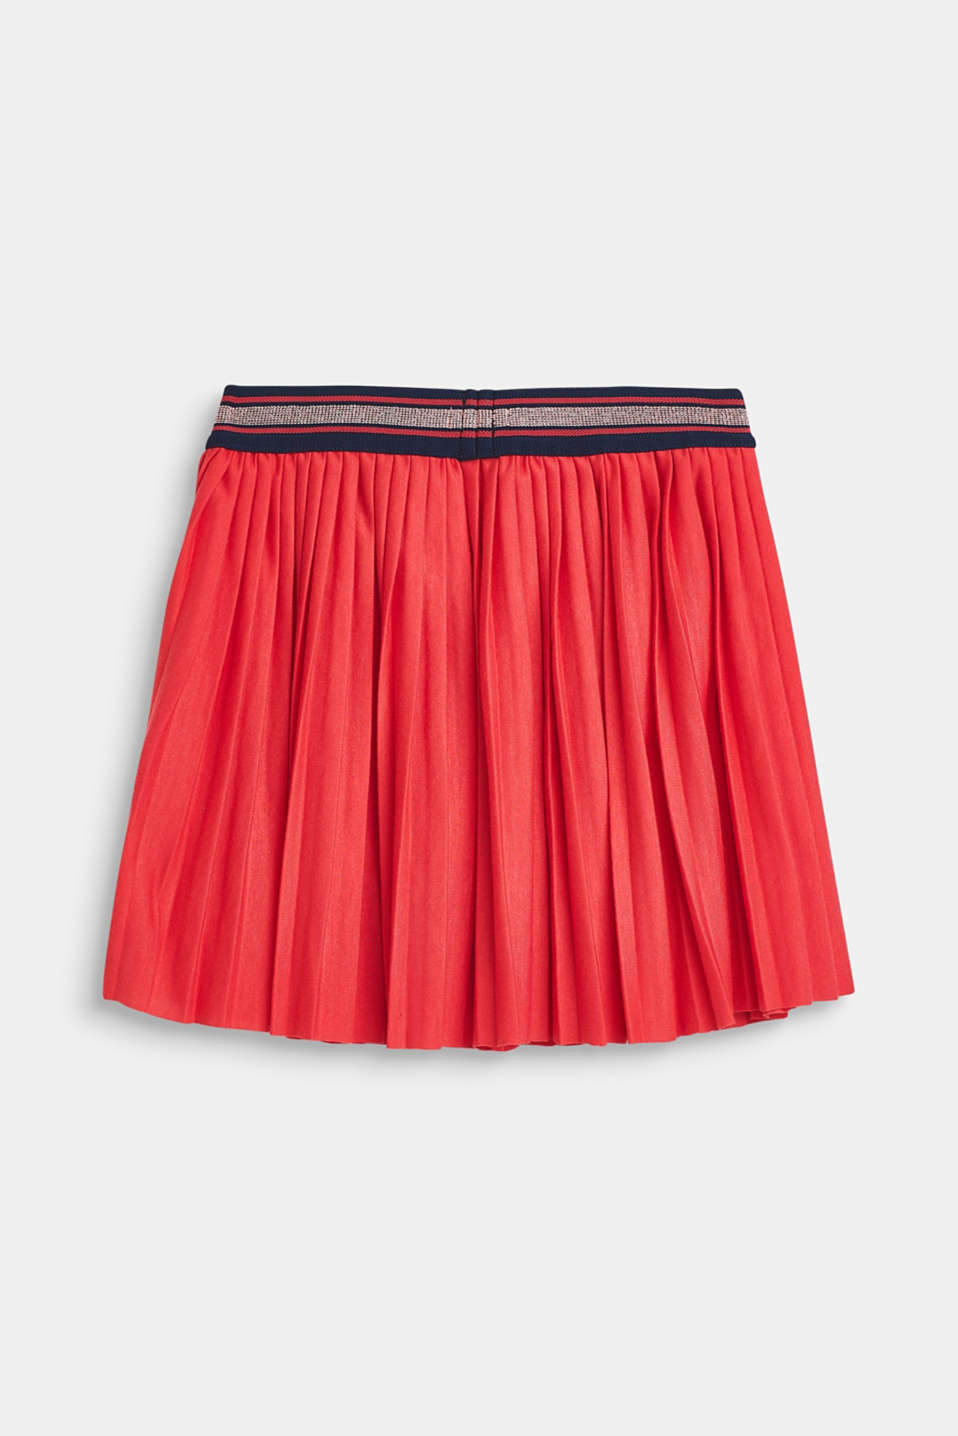 Pleated skirt made of jersey with an elasticated waistband, STRAWBERRY, detail image number 1